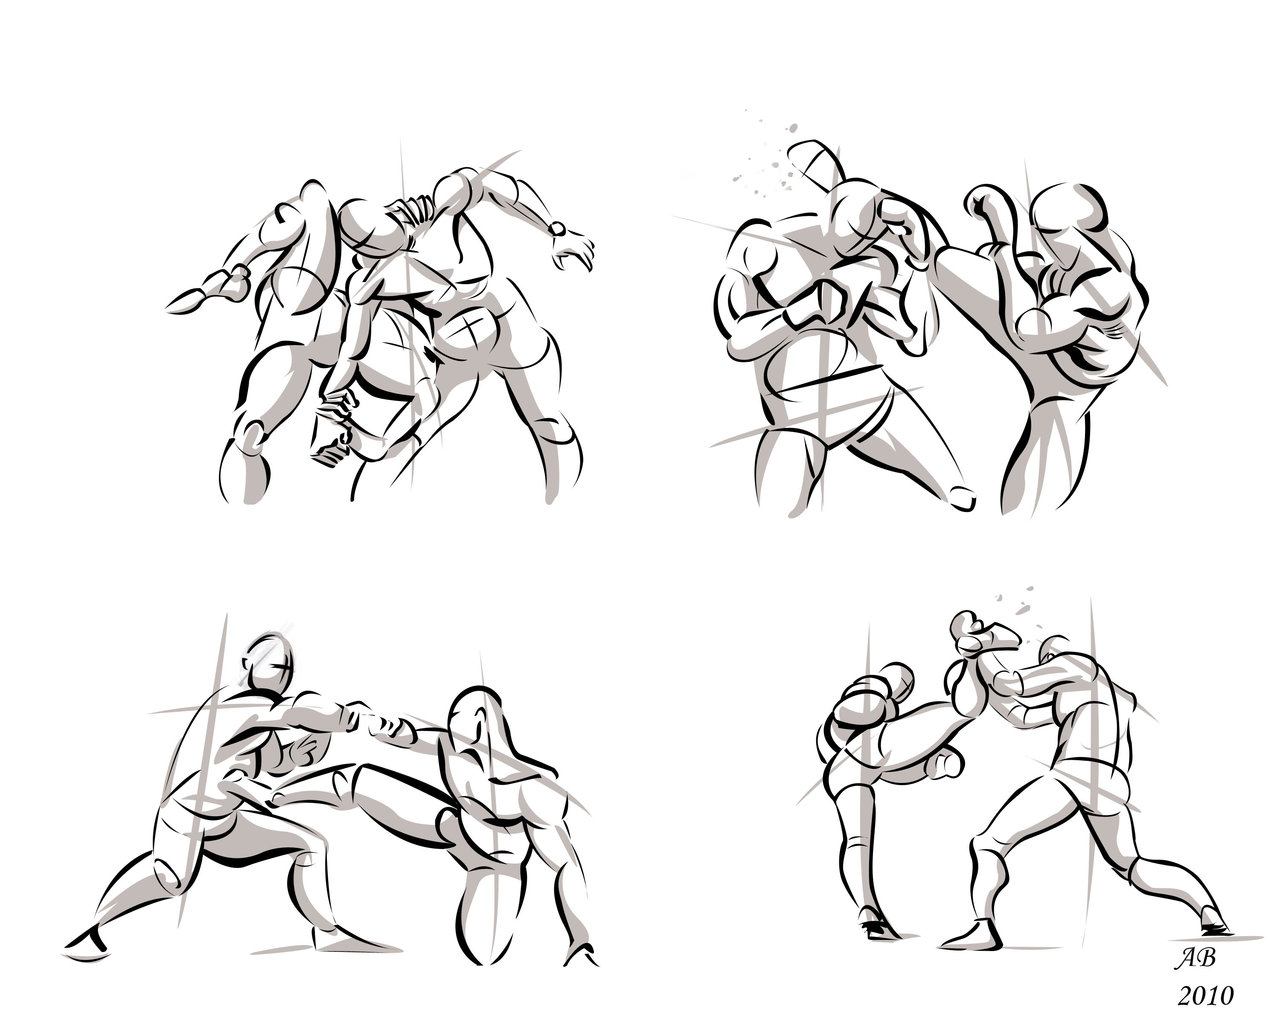 Drawings Of People Fighting - ClipArt Best